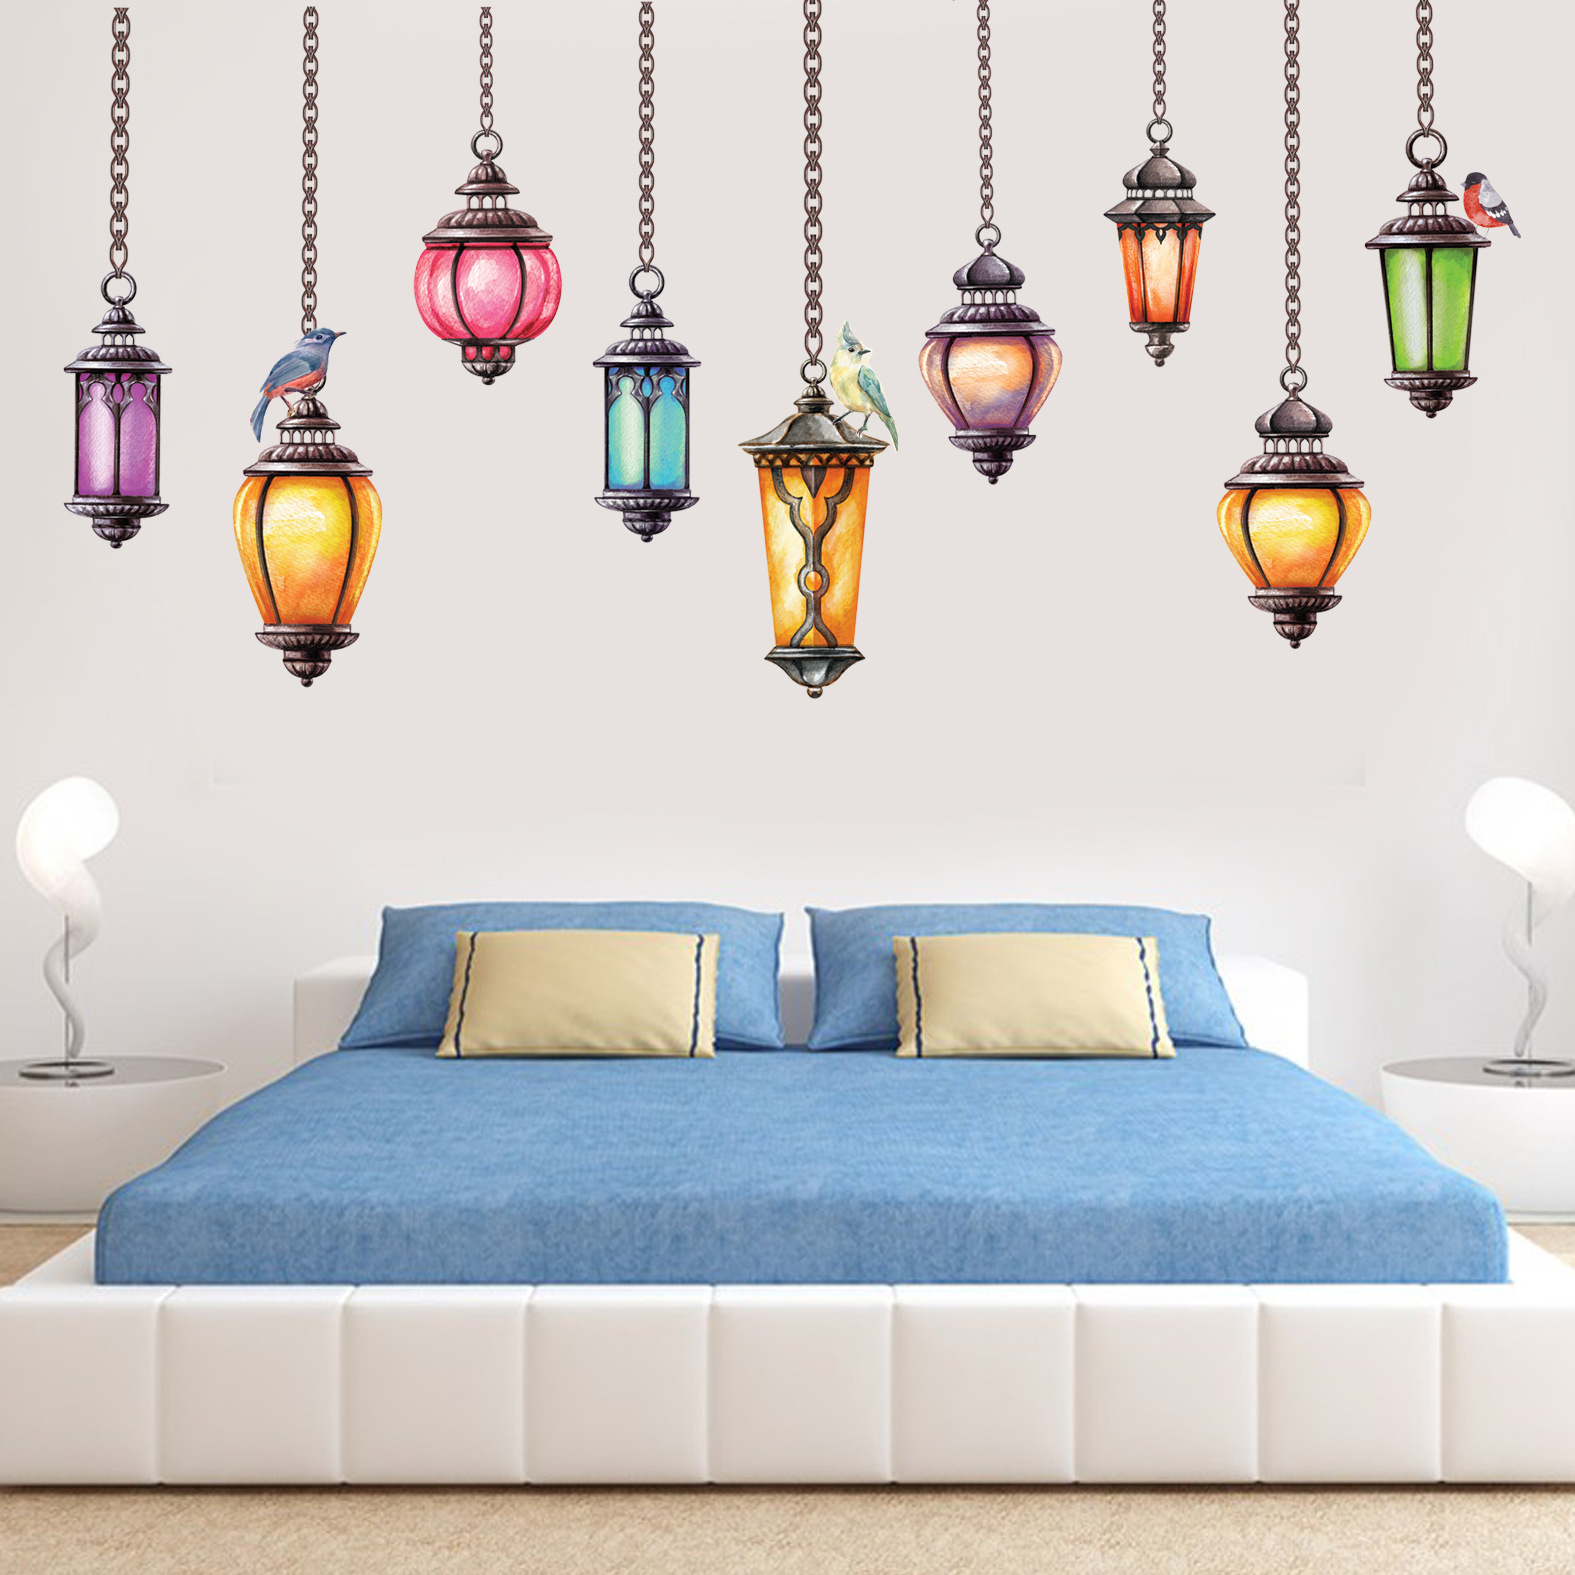 Miico Creative Colorful Exotica Ceiling Lamps PVC Removable Home Room Decorative Wall Door Decor Sticker